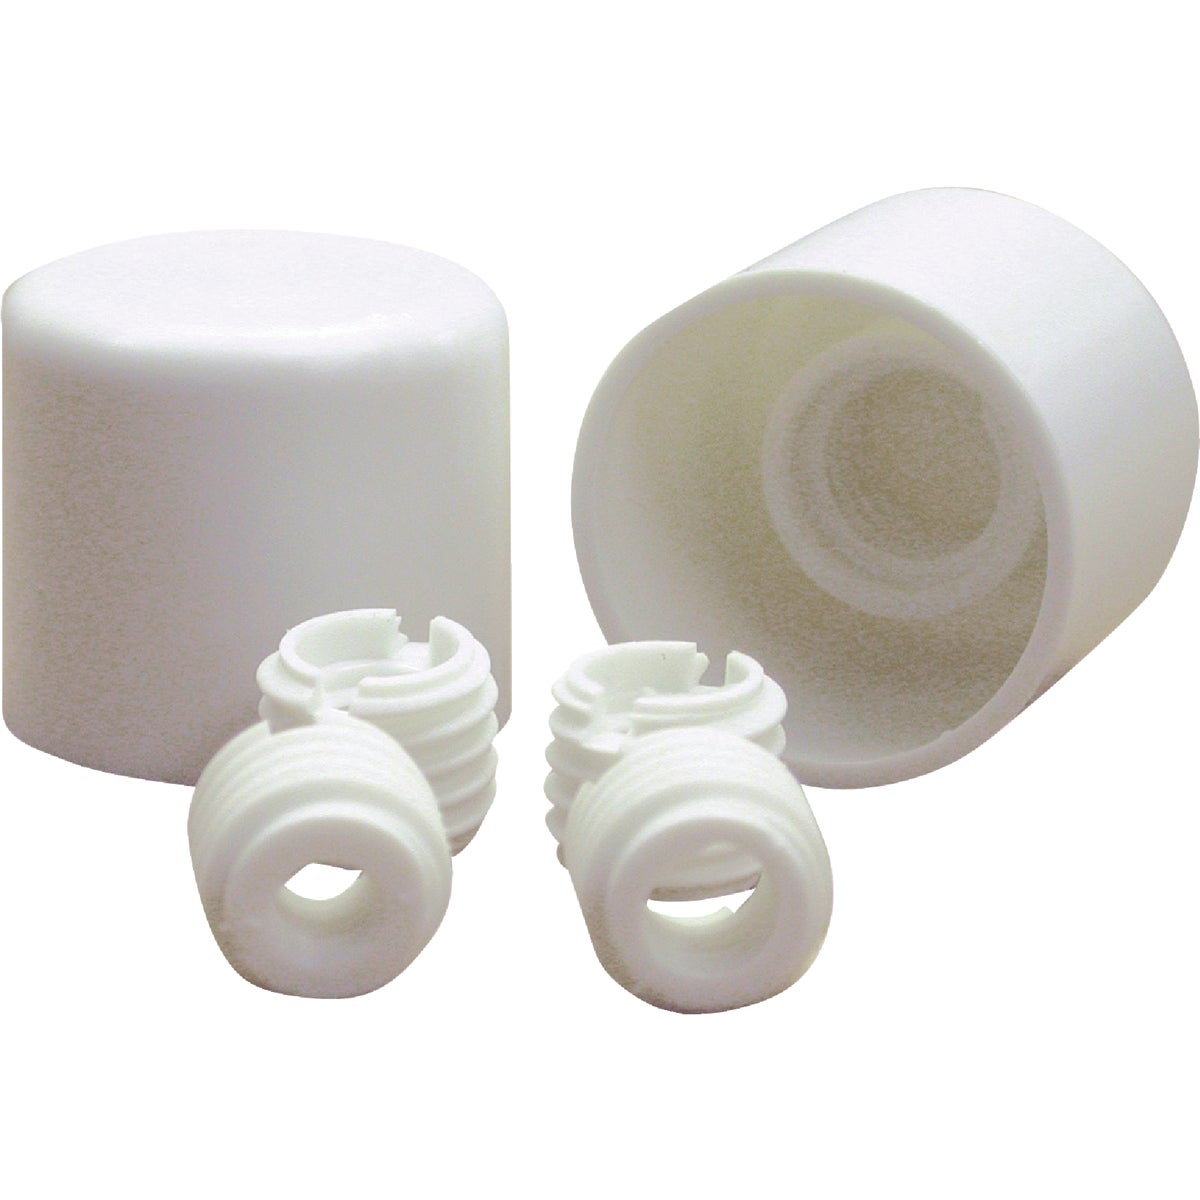 TWISTER TOILET BOWL CAPS - 88877 by Danco Perfect Match